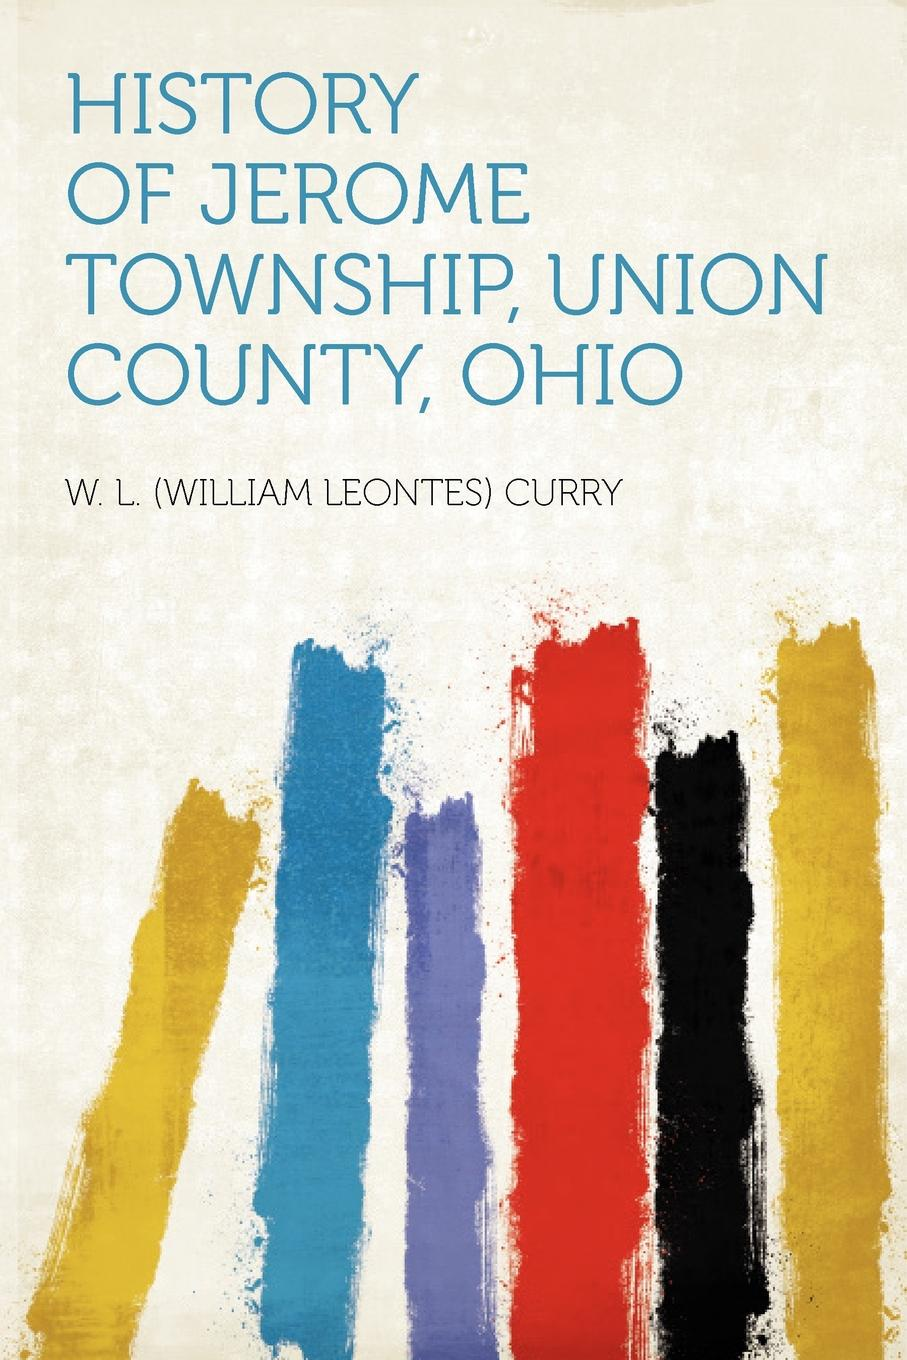 History of Jerome Township, Union County, Ohio